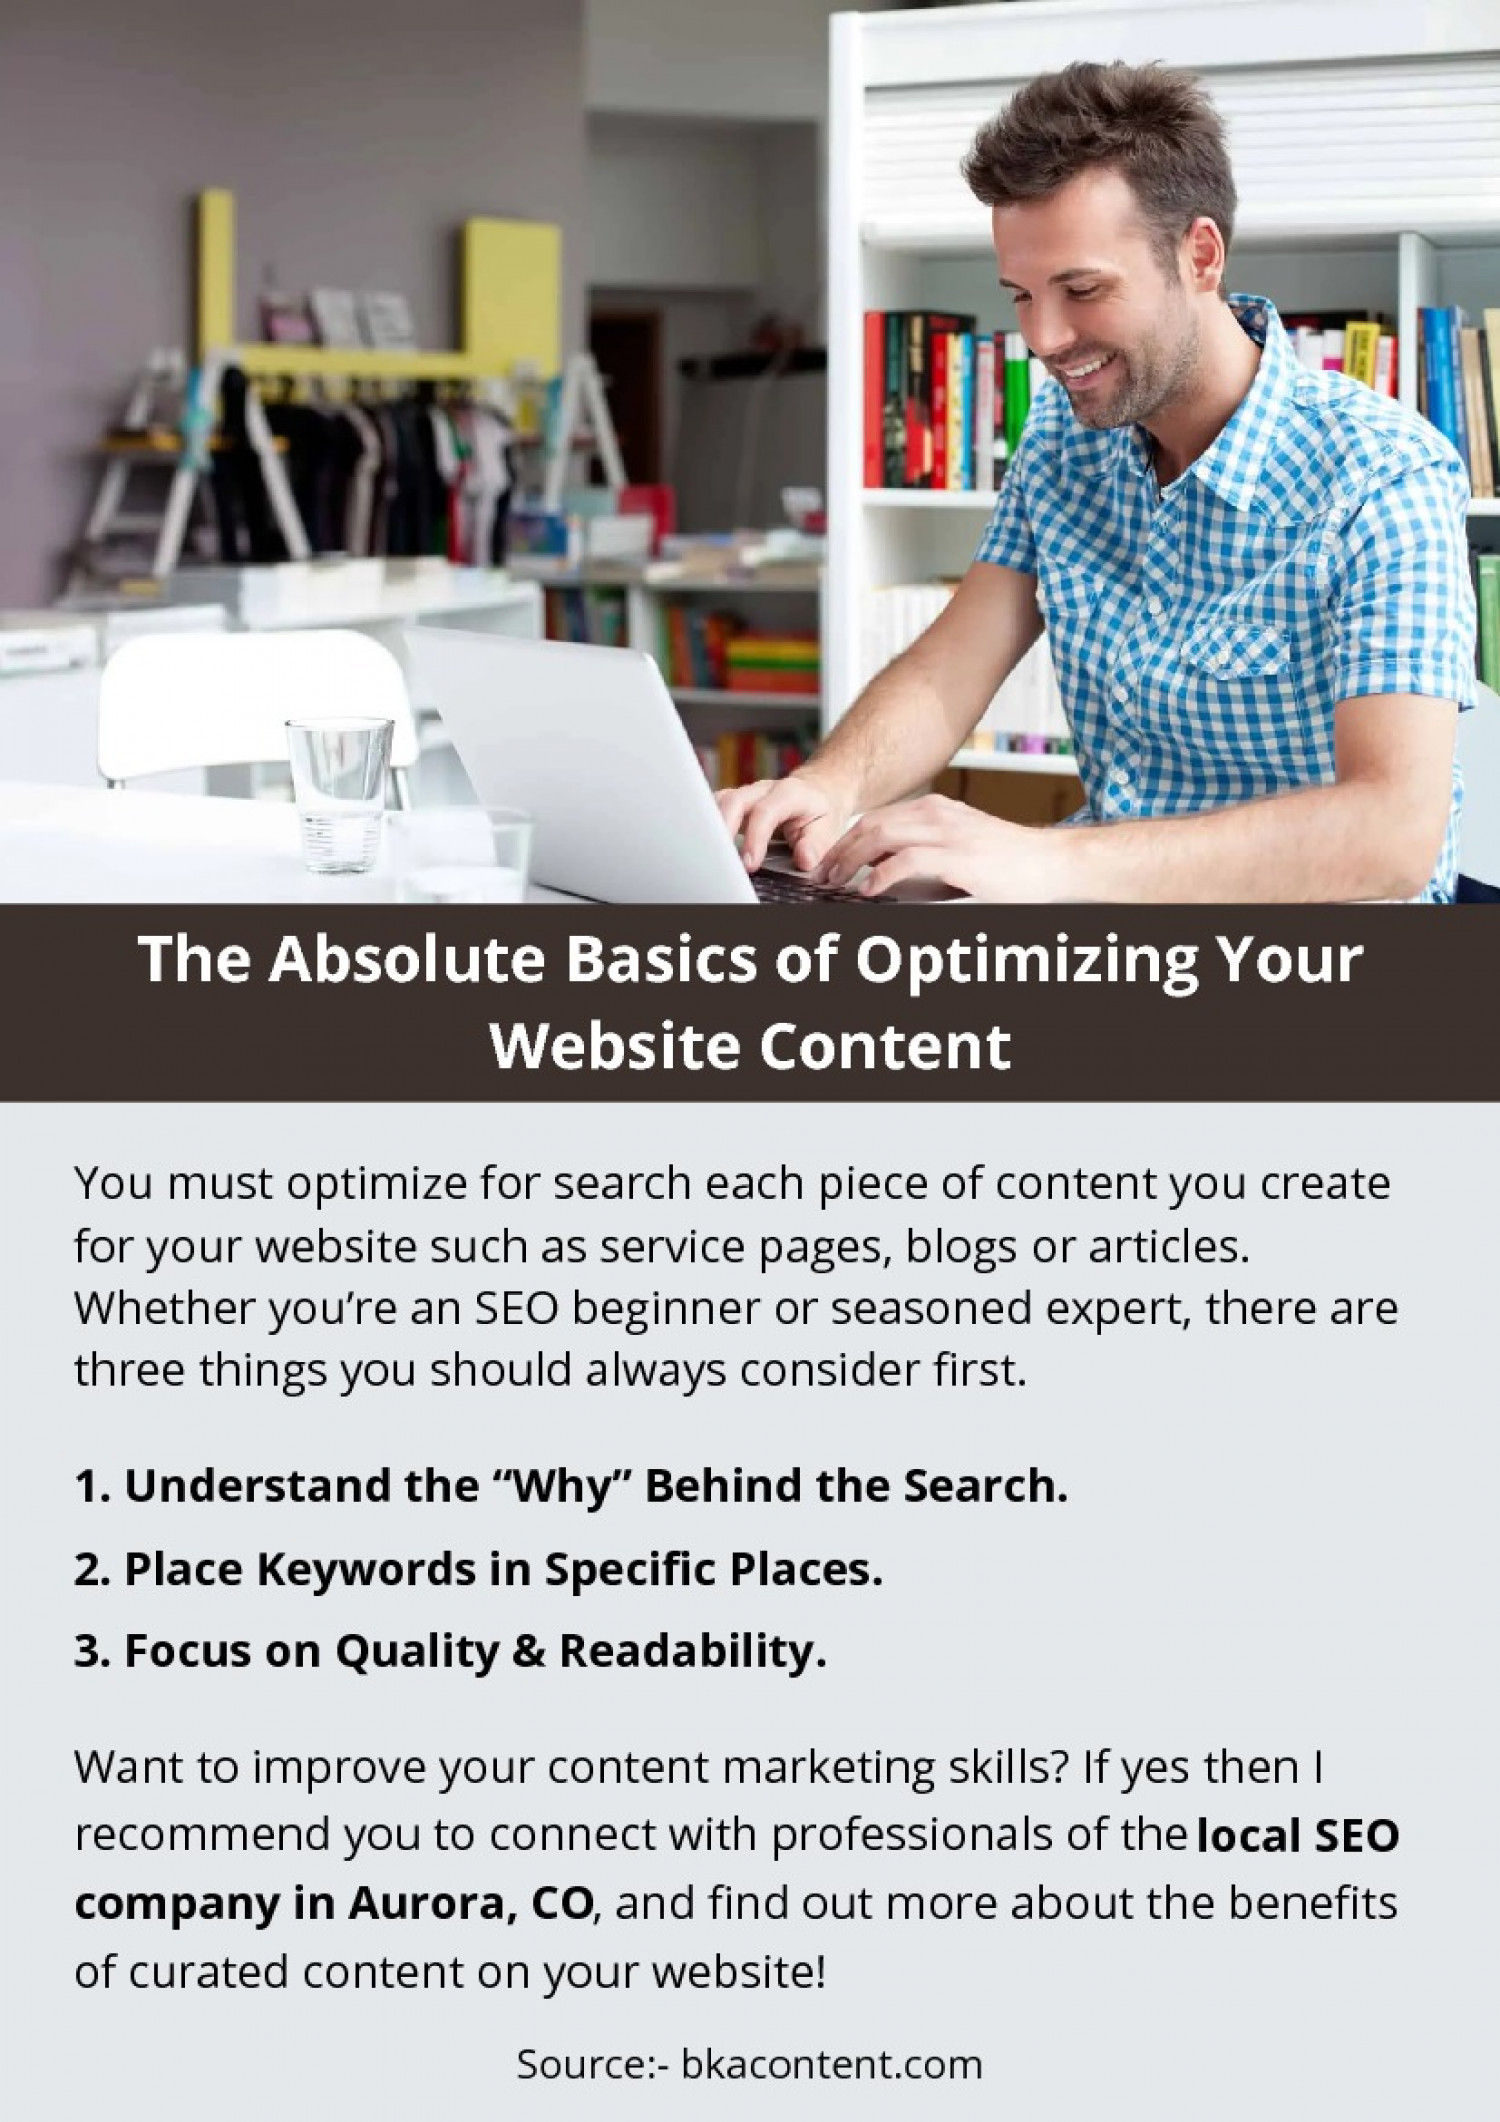 The Absolute Basics of Optimizing Your Website Content Infographic